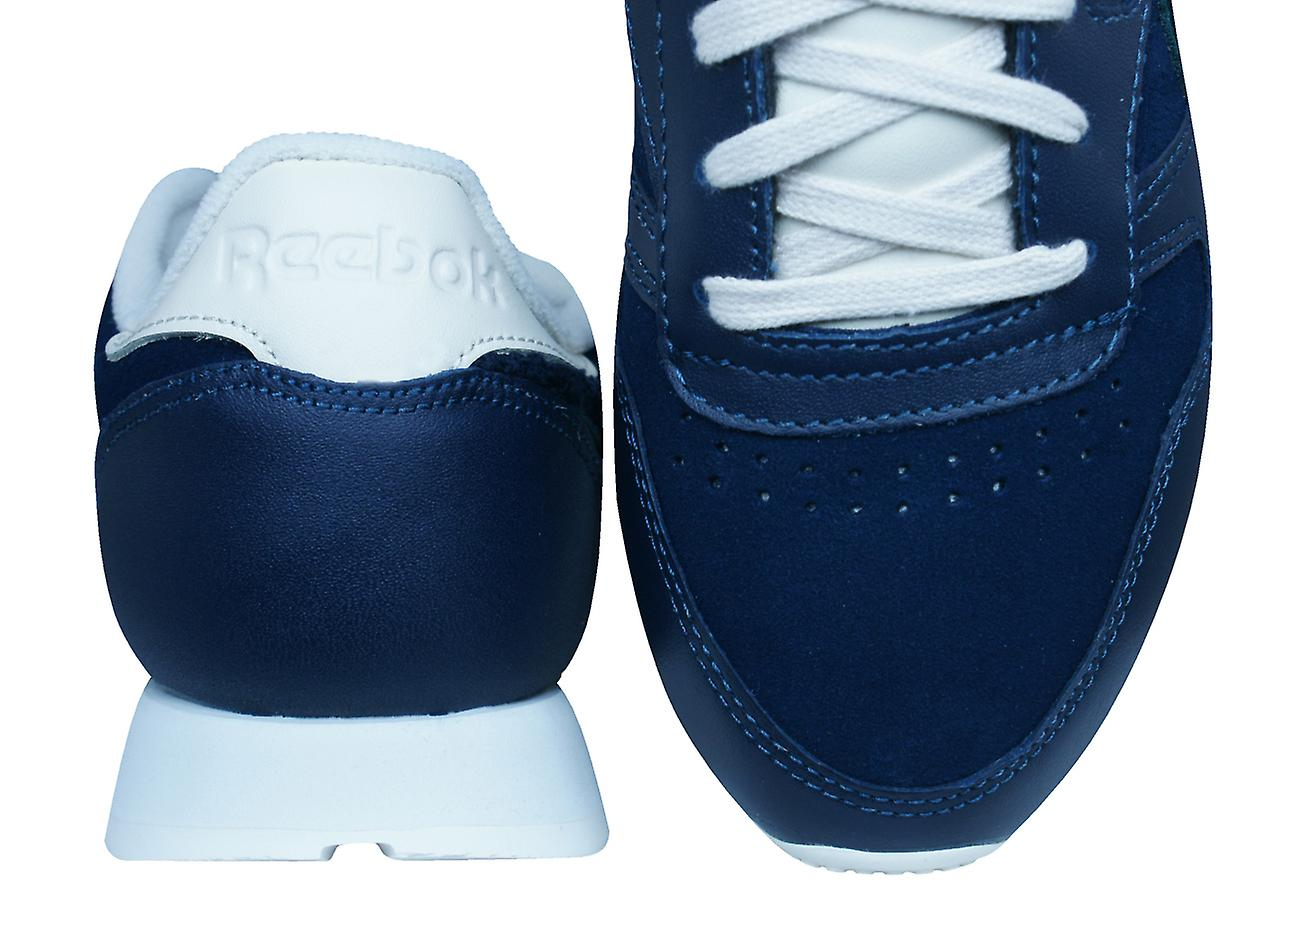 Reebok Classic Classic Classic Leather Ivy League Womens Trainers / Shoes - Blue c18cd2